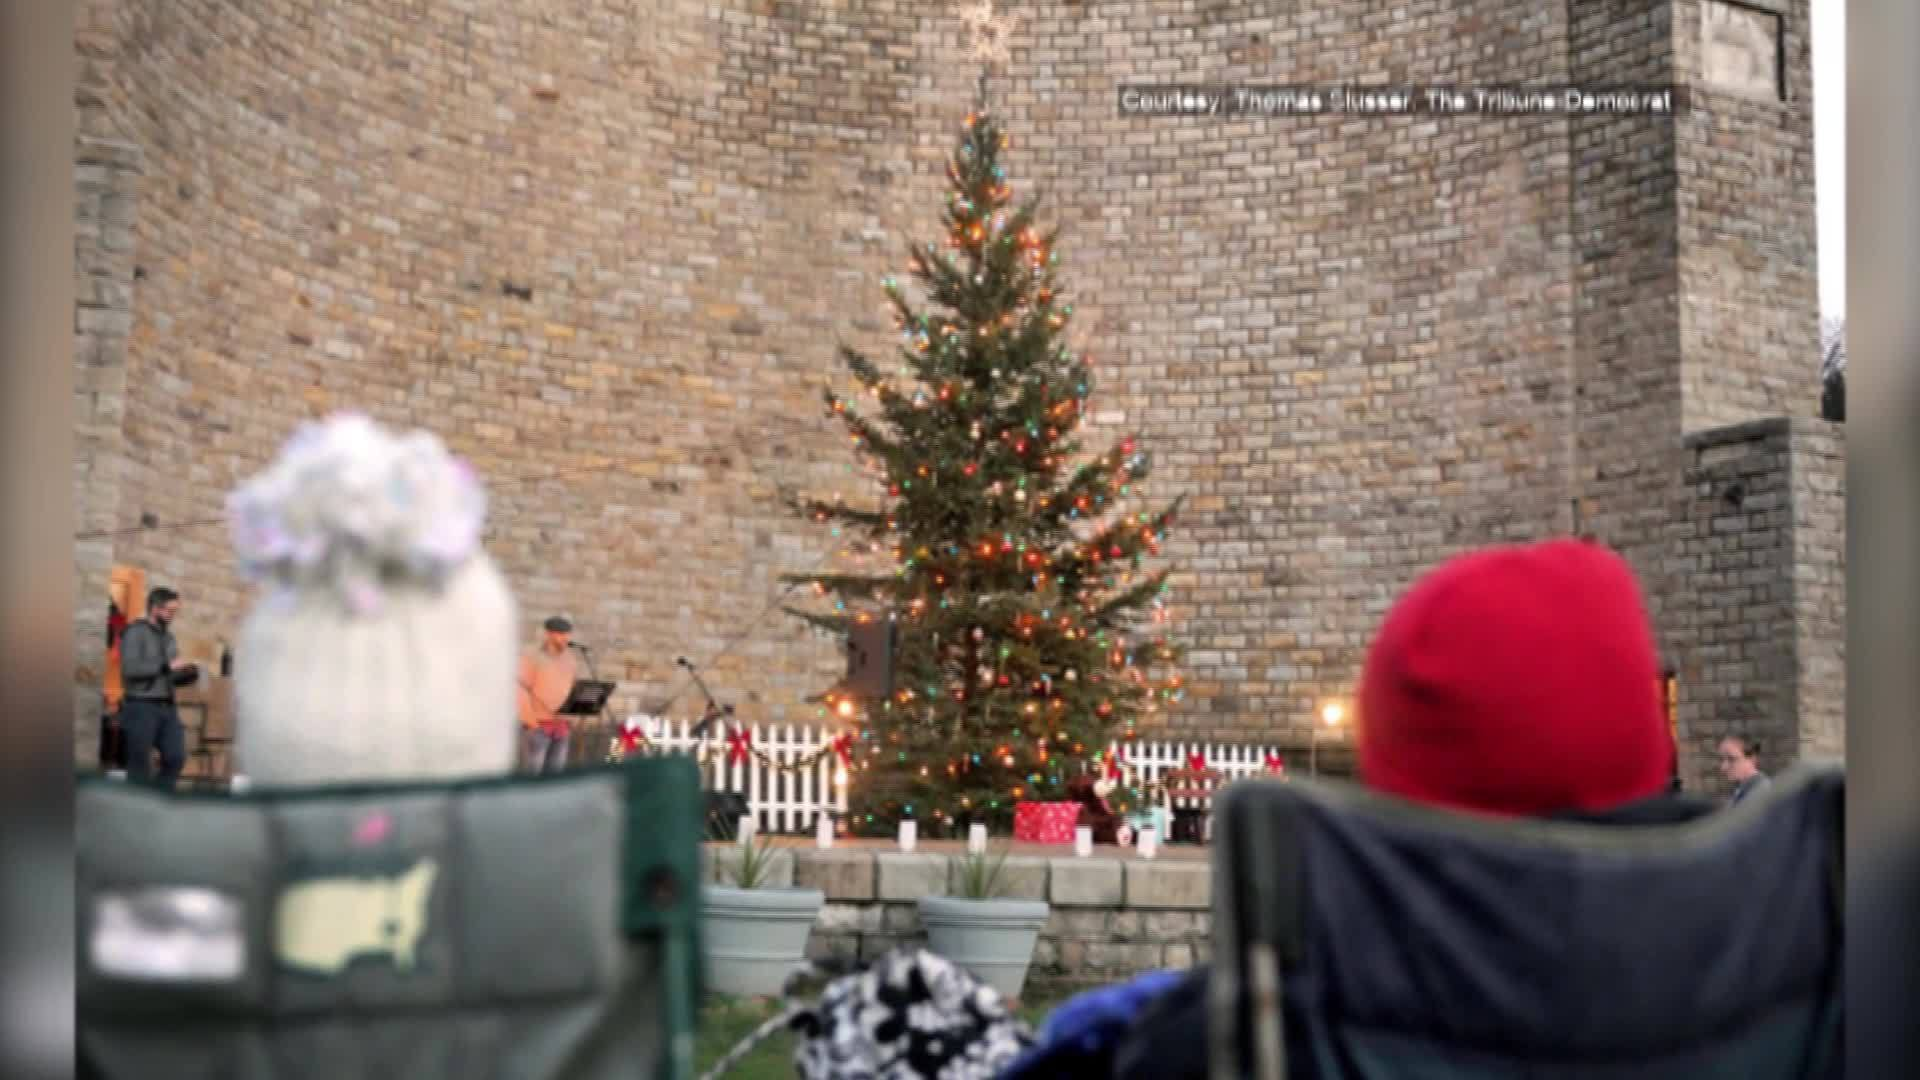 Roxbury_Bandshell_tree_lighting_2_20181203221459